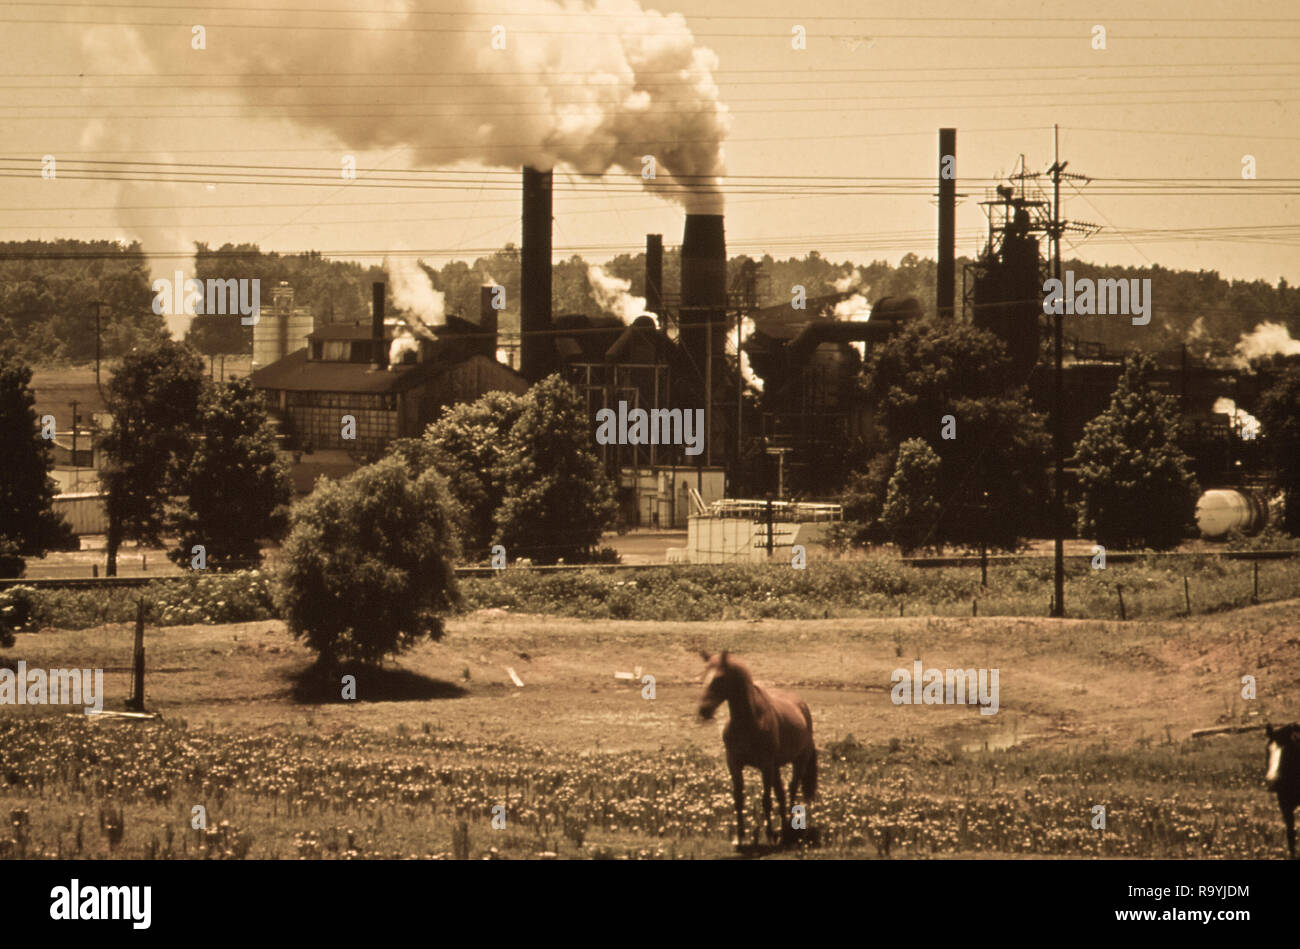 Smoke billows from industrial smokestacks in America affecting life Stock Photo